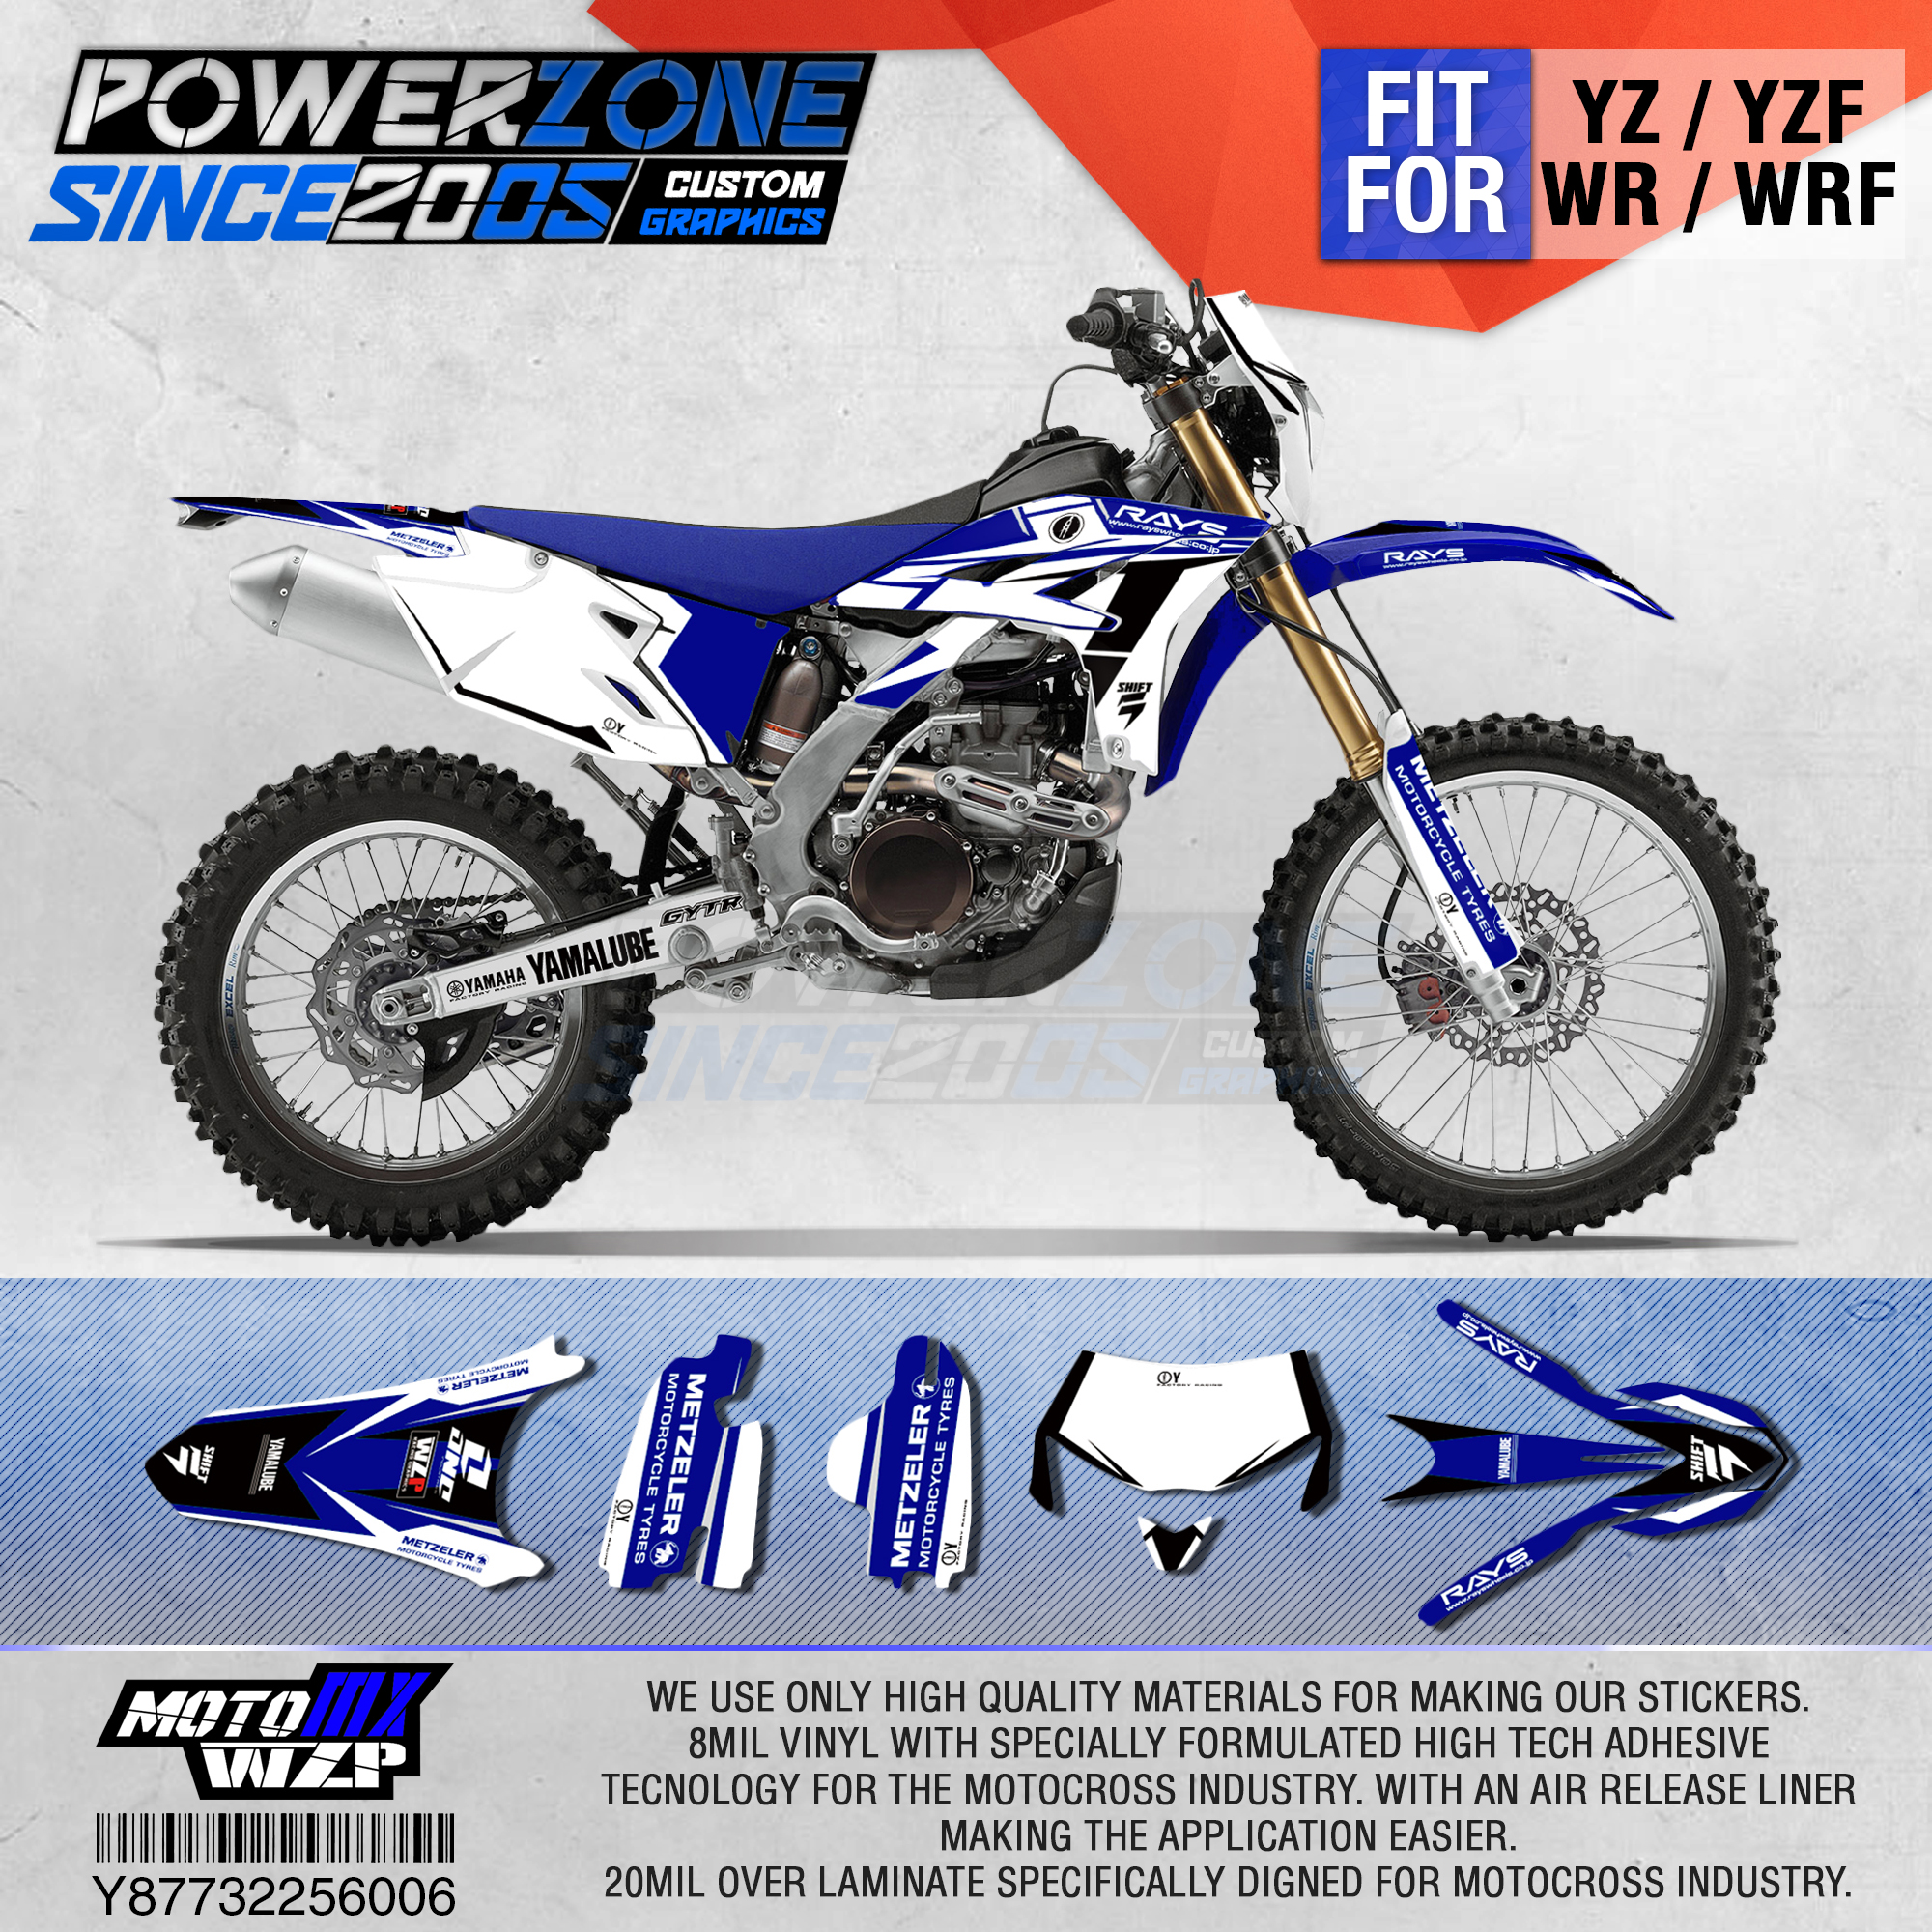 PowerZone Customized Team Graphics Backgrounds Decals 3M Custom <font><b>Stickers</b></font> For <font><b>YAMAHA</b></font> <font><b>WR450F</b></font> WR WRF 450cc 2016 2017 2018 2019 006 image